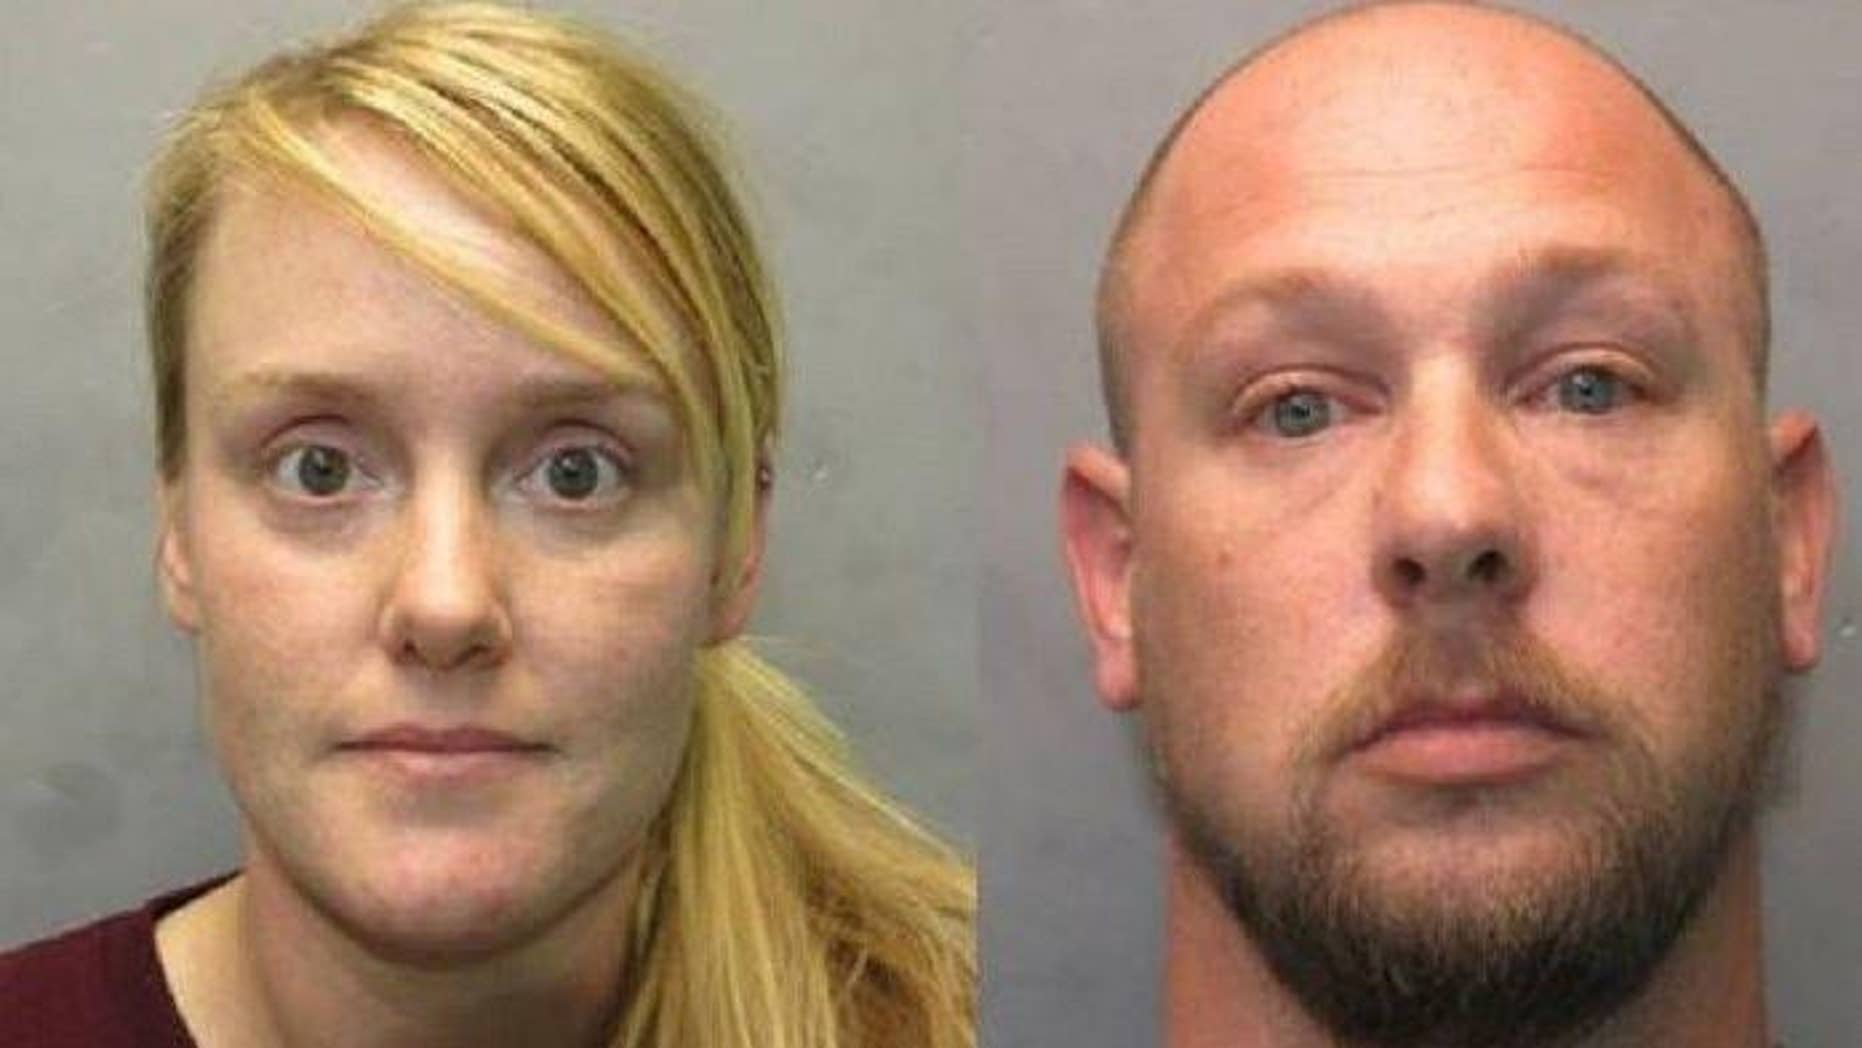 Ashley and Lee Roe were arrested for skipping out on paying hotel bills totaling to more than $10,000, police said.